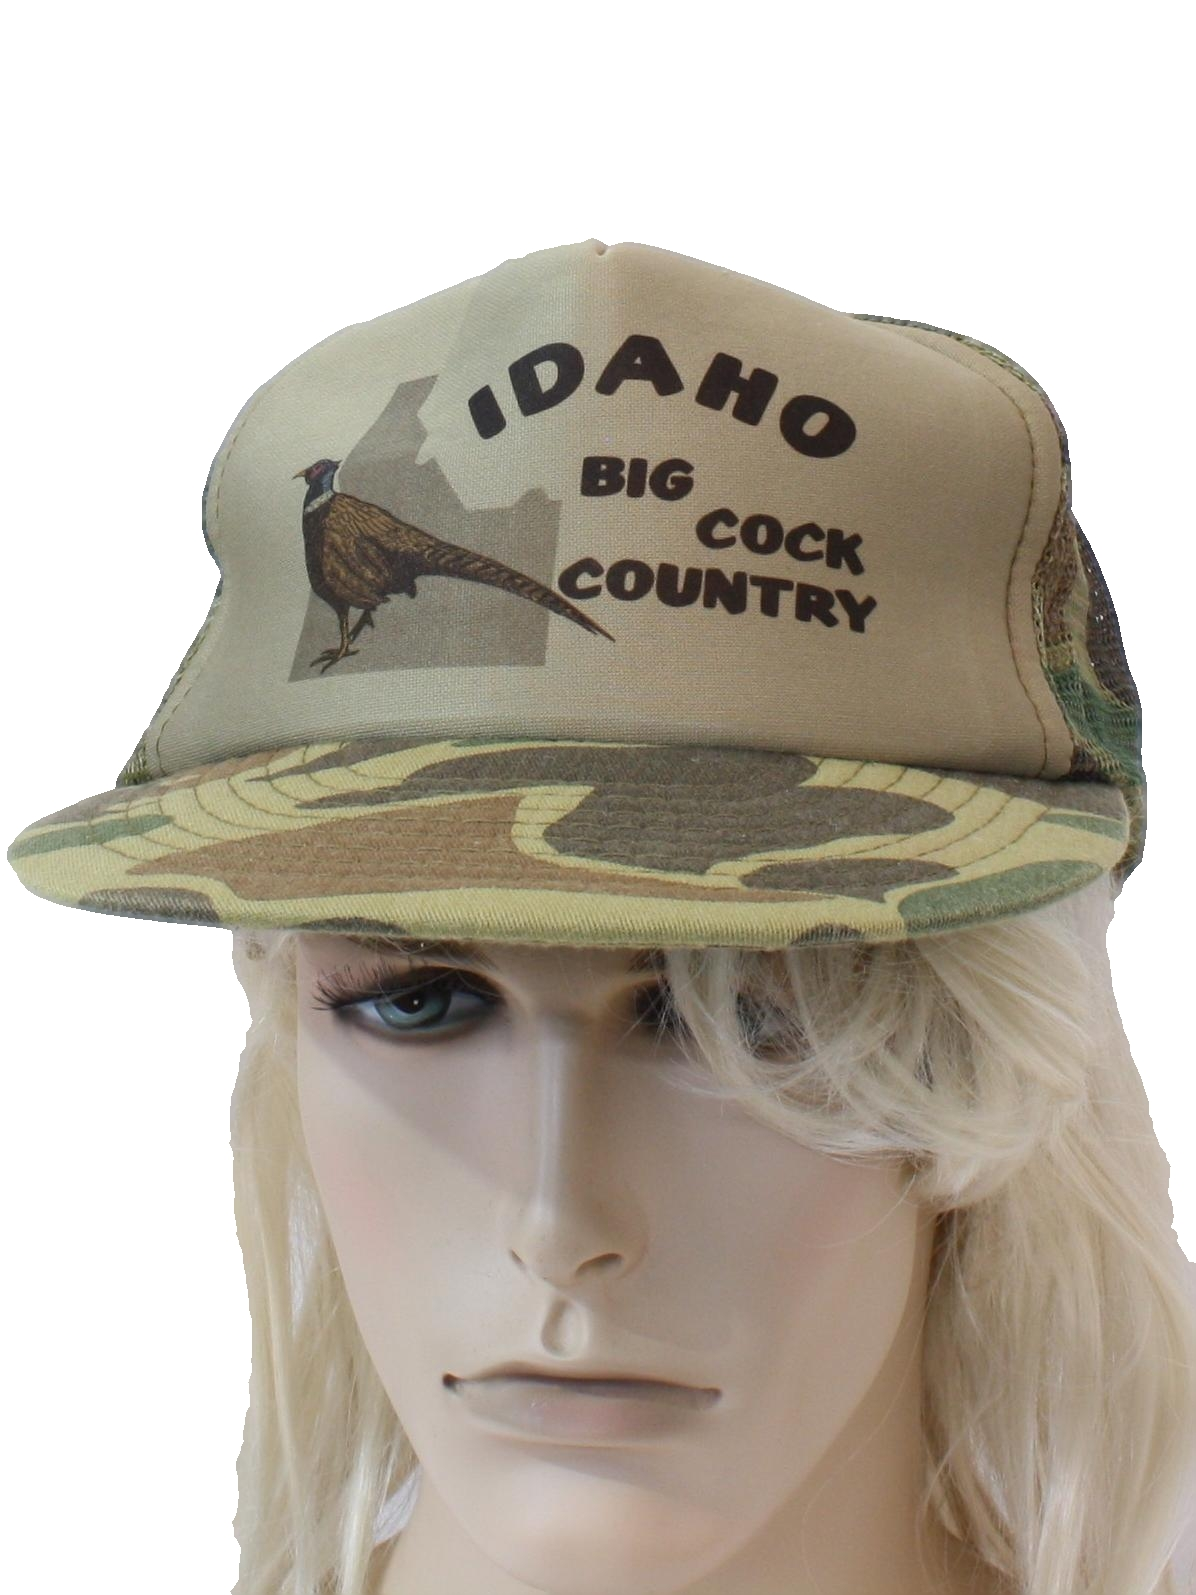 Big cock country hats